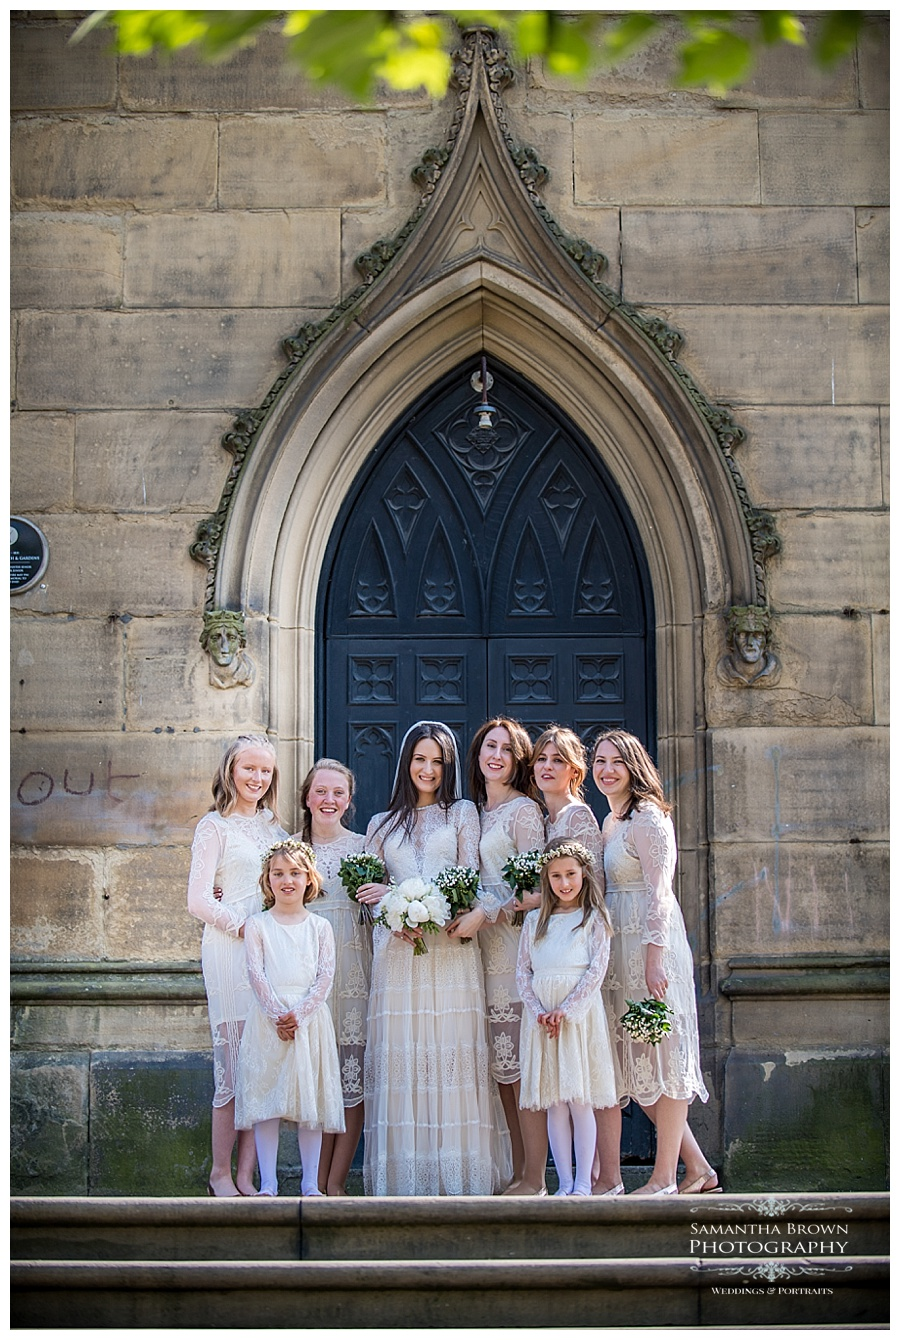 St Lukes Bombed out Church Liverpool bride and bridesmaids